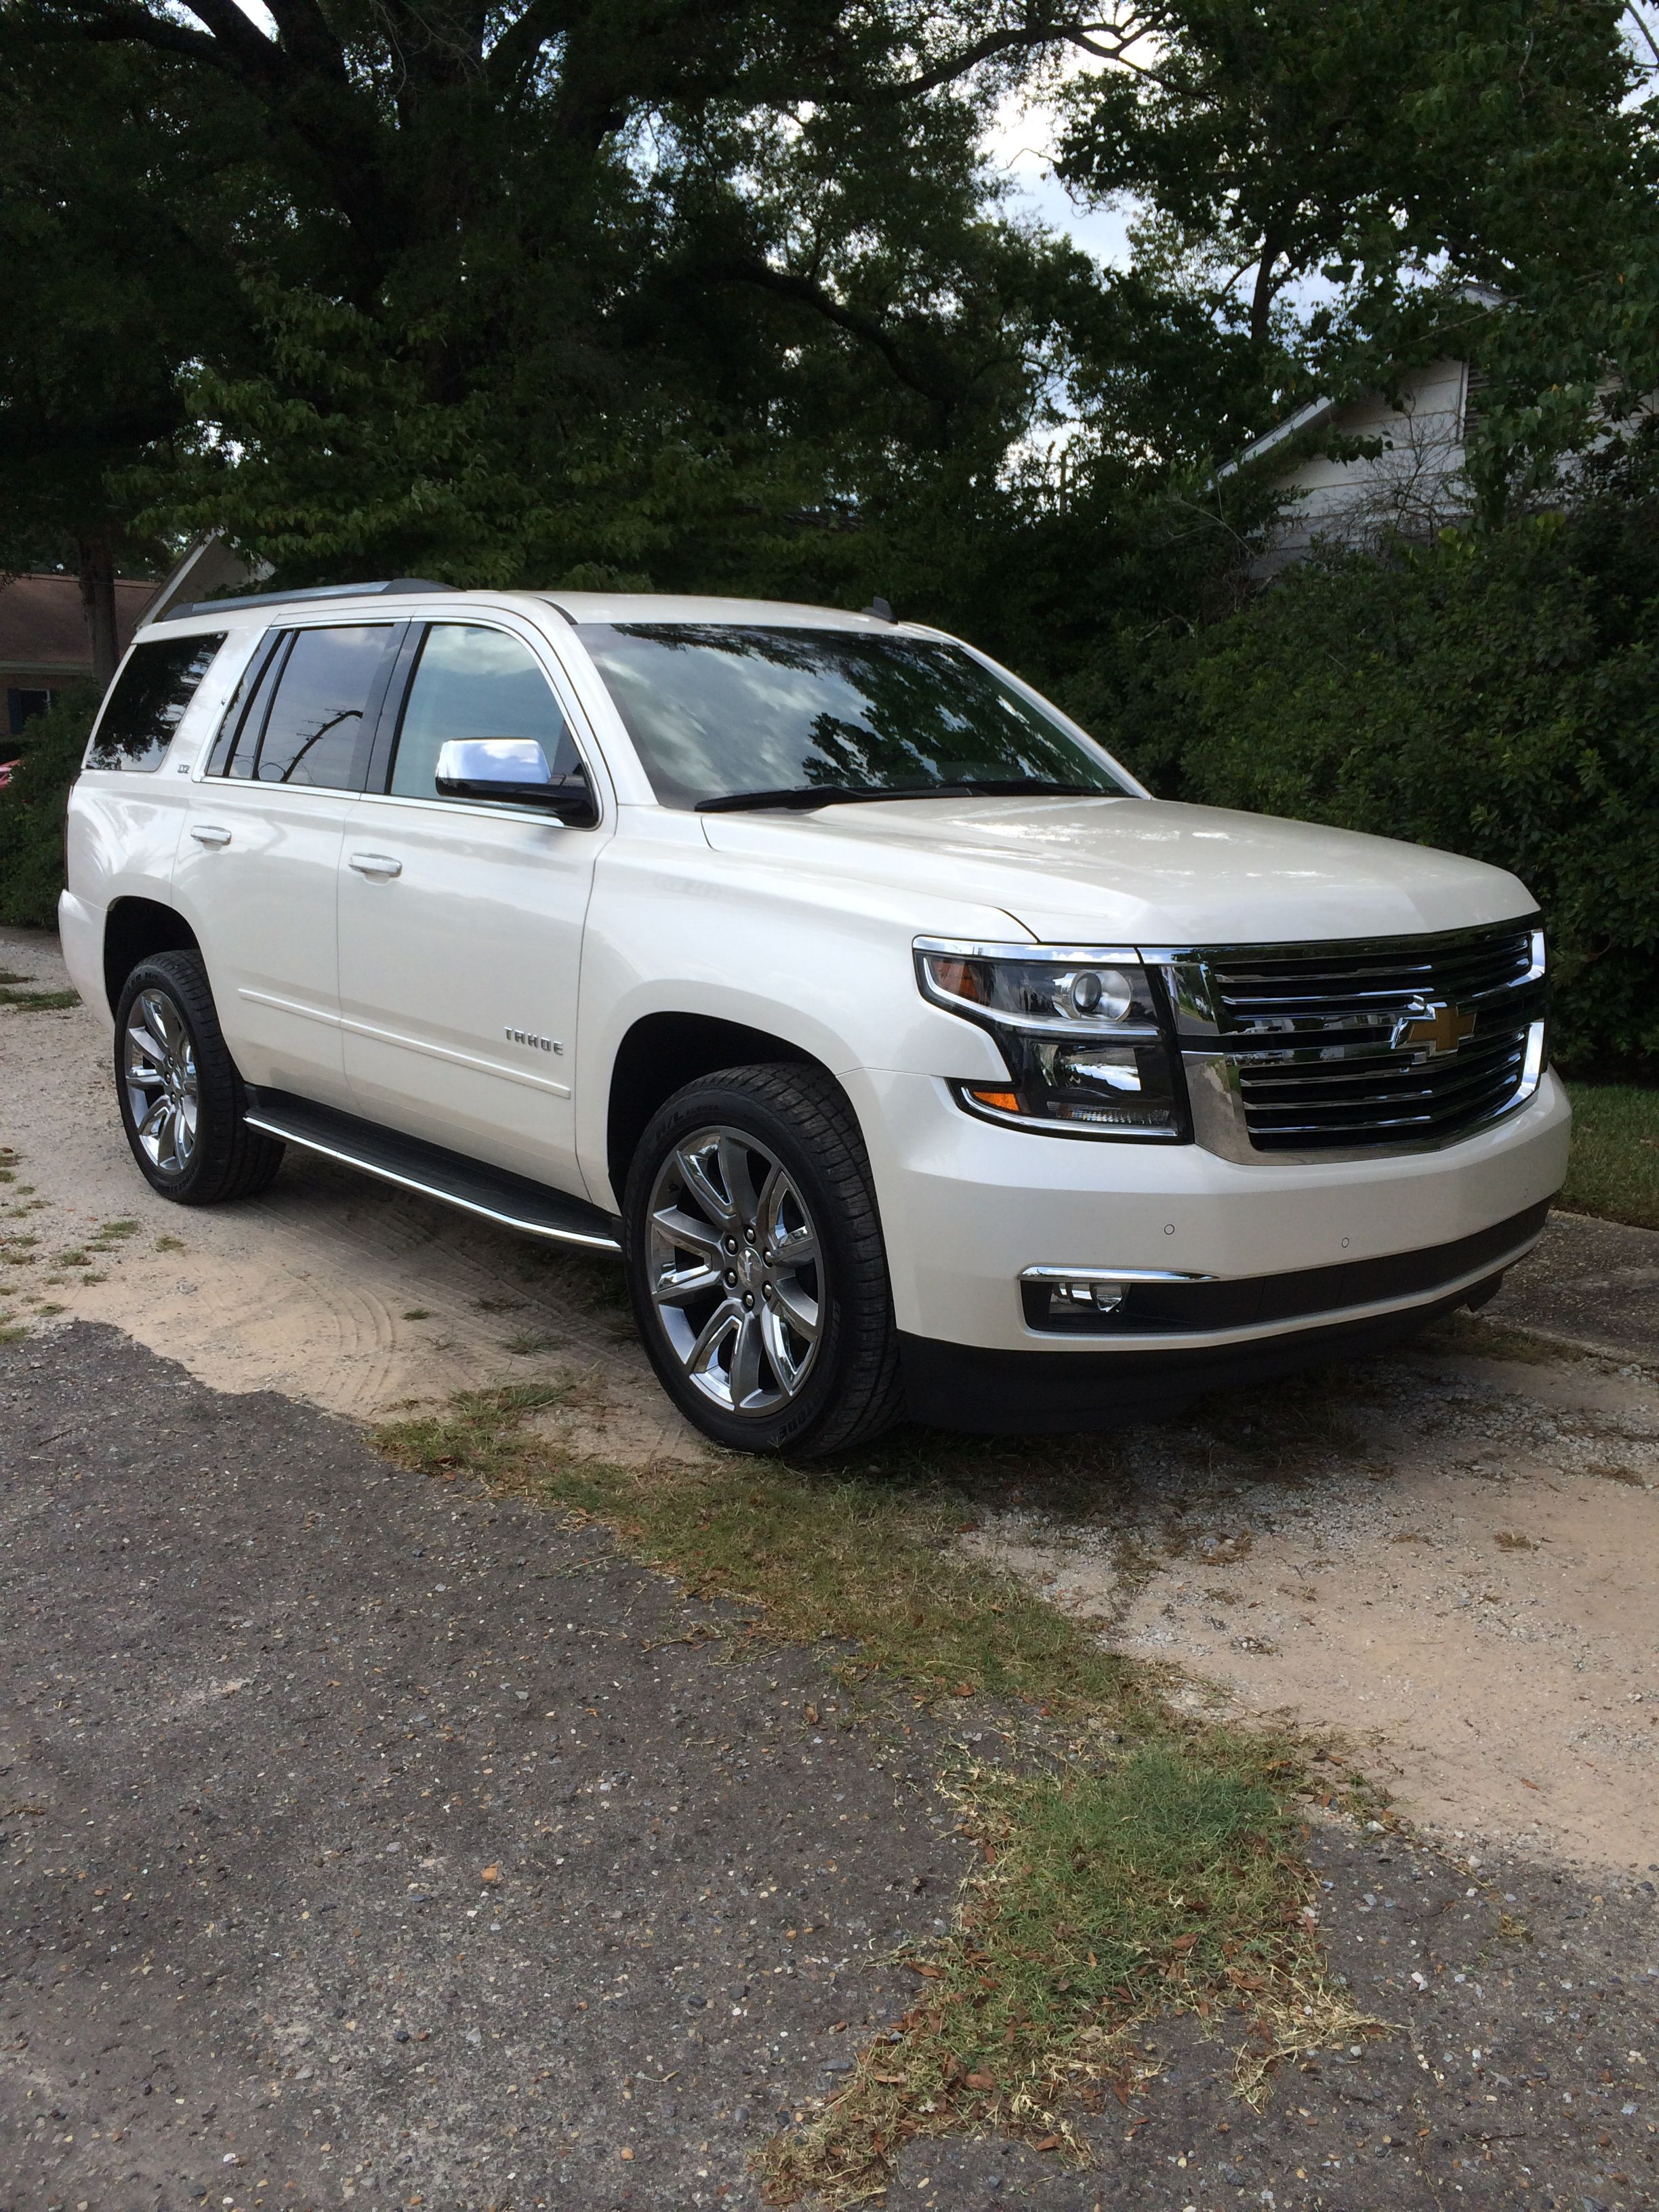 2015 Chevy Tahoe Ltz Great Suv Our Current Family Suv Chevy Tahoe Ltz 2015 Chevy Tahoe Chevy Tahoe